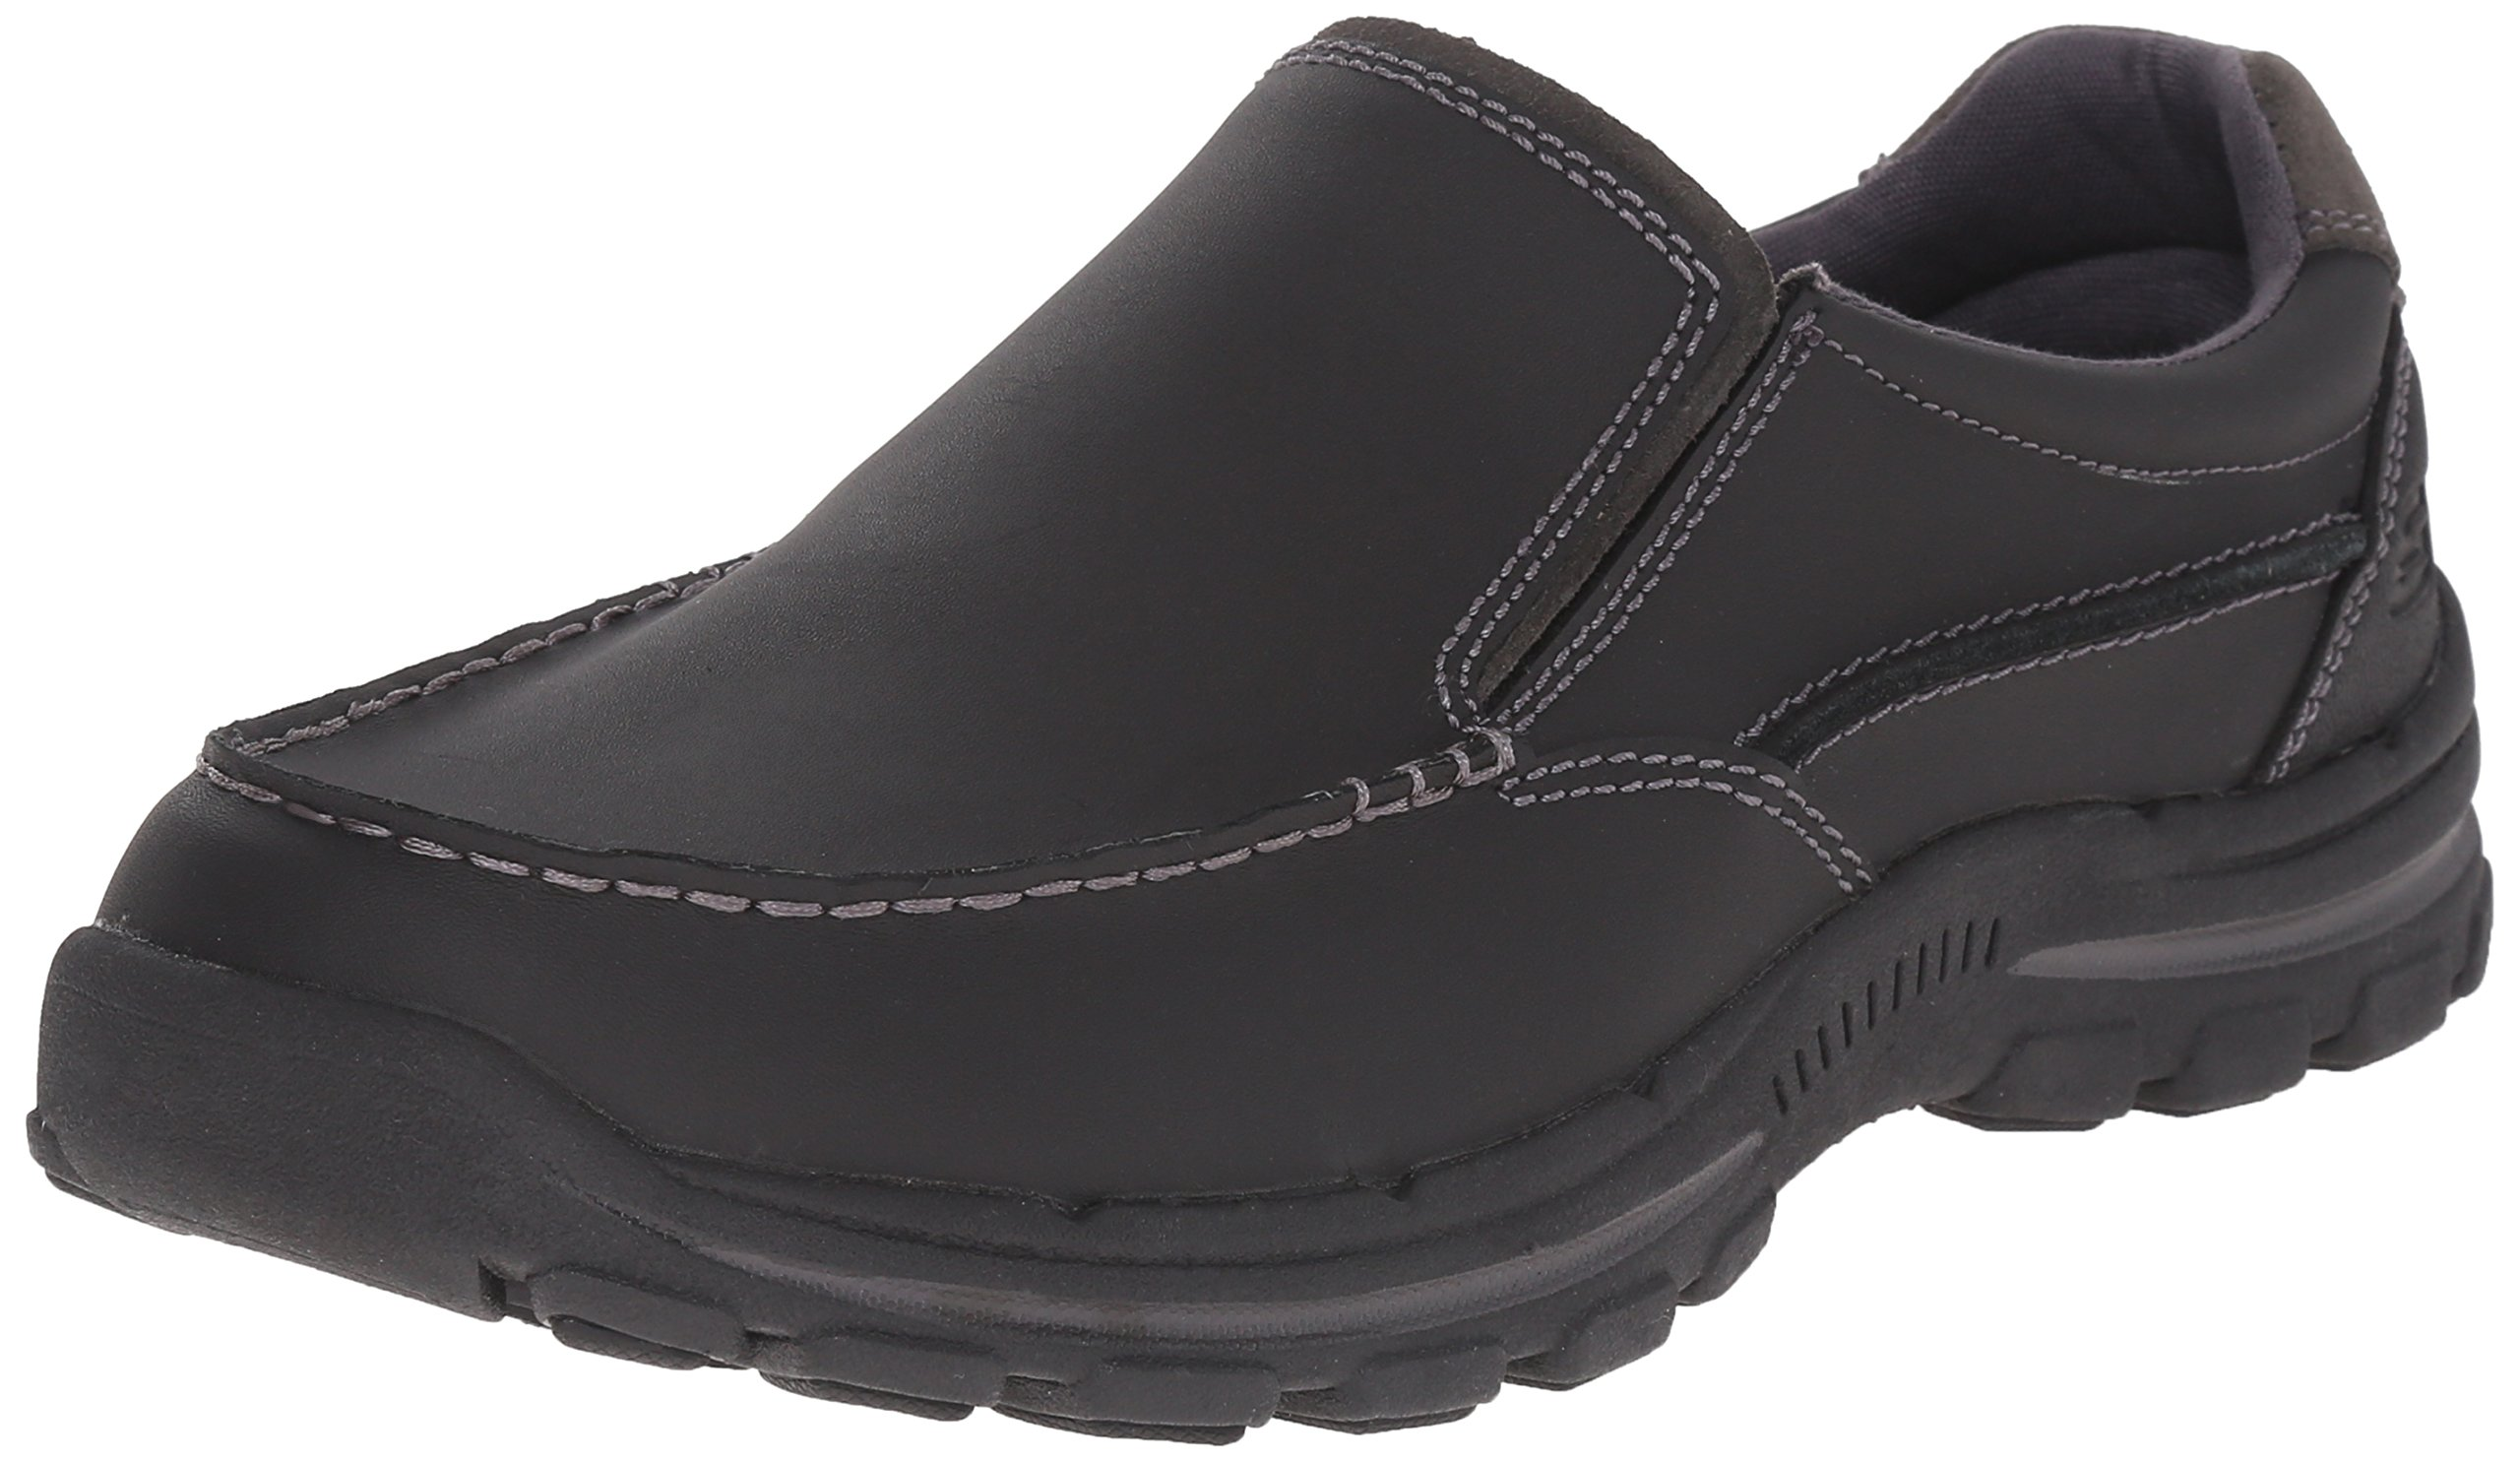 Skechers Braver Rayland Loafer Leather